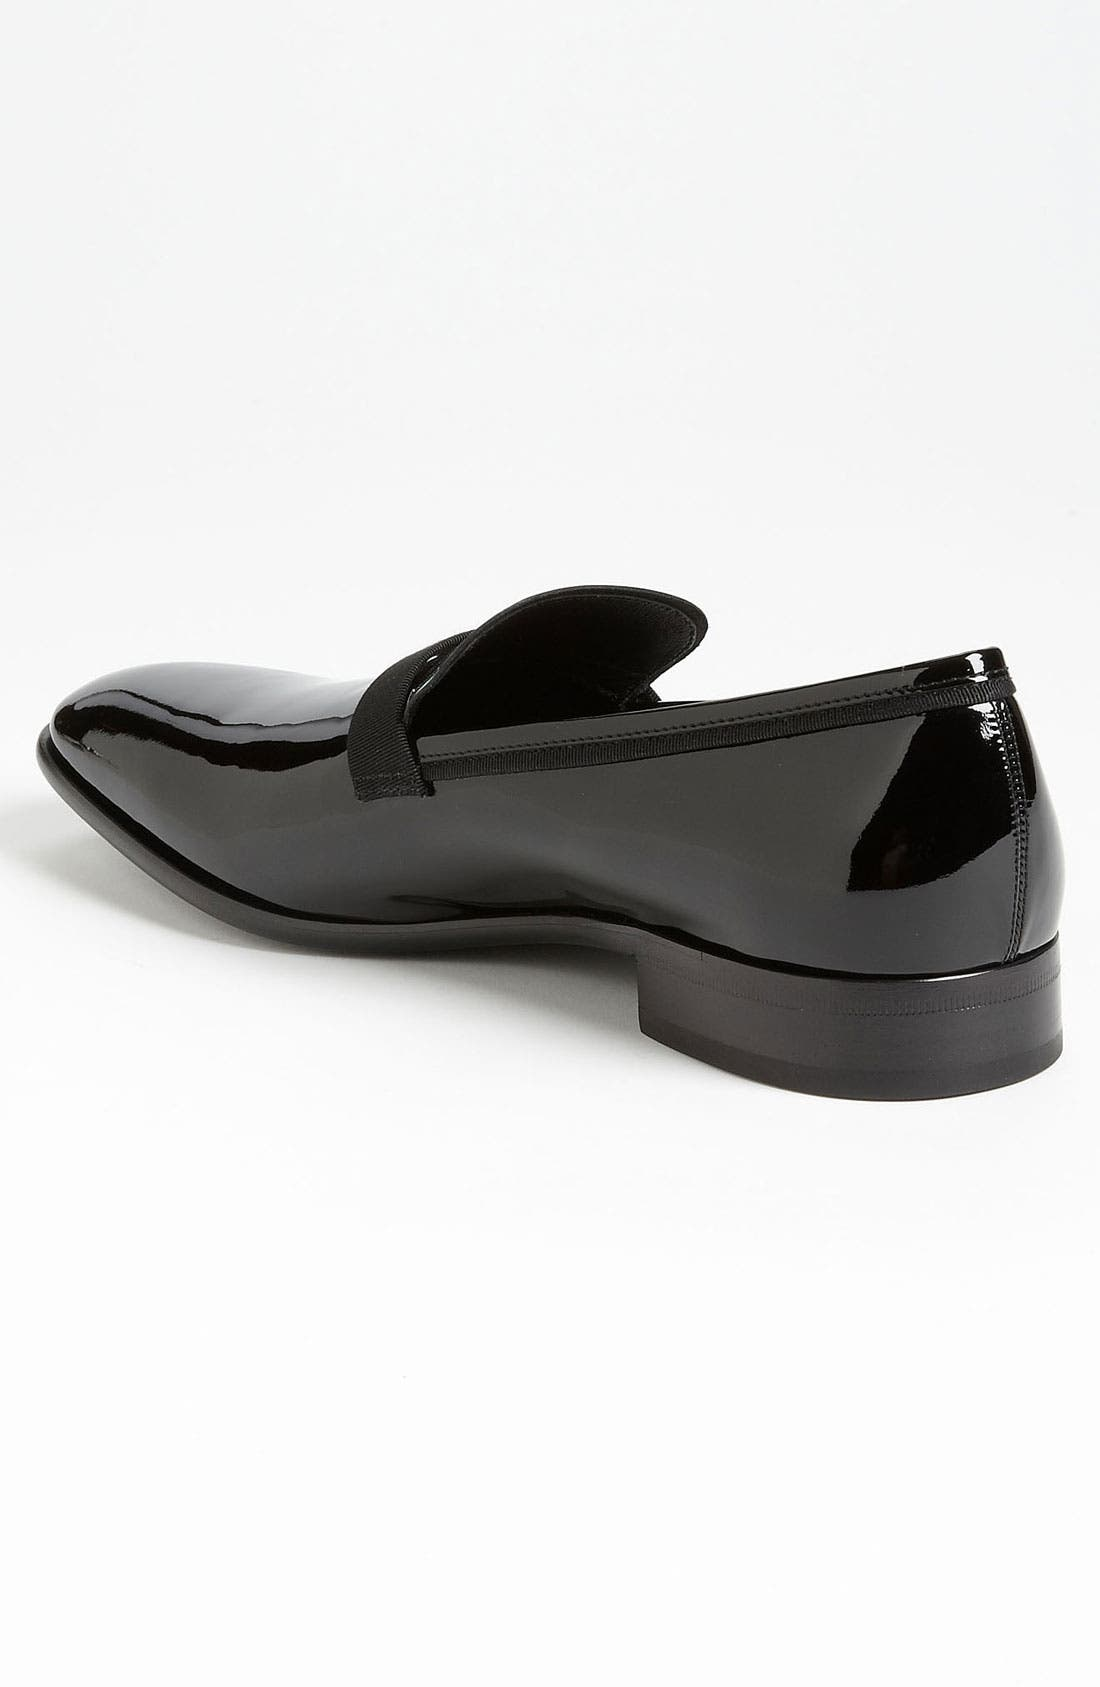 Alternate Image 2  - Salvatore Ferragamo 'Antoane' Formal Loafer